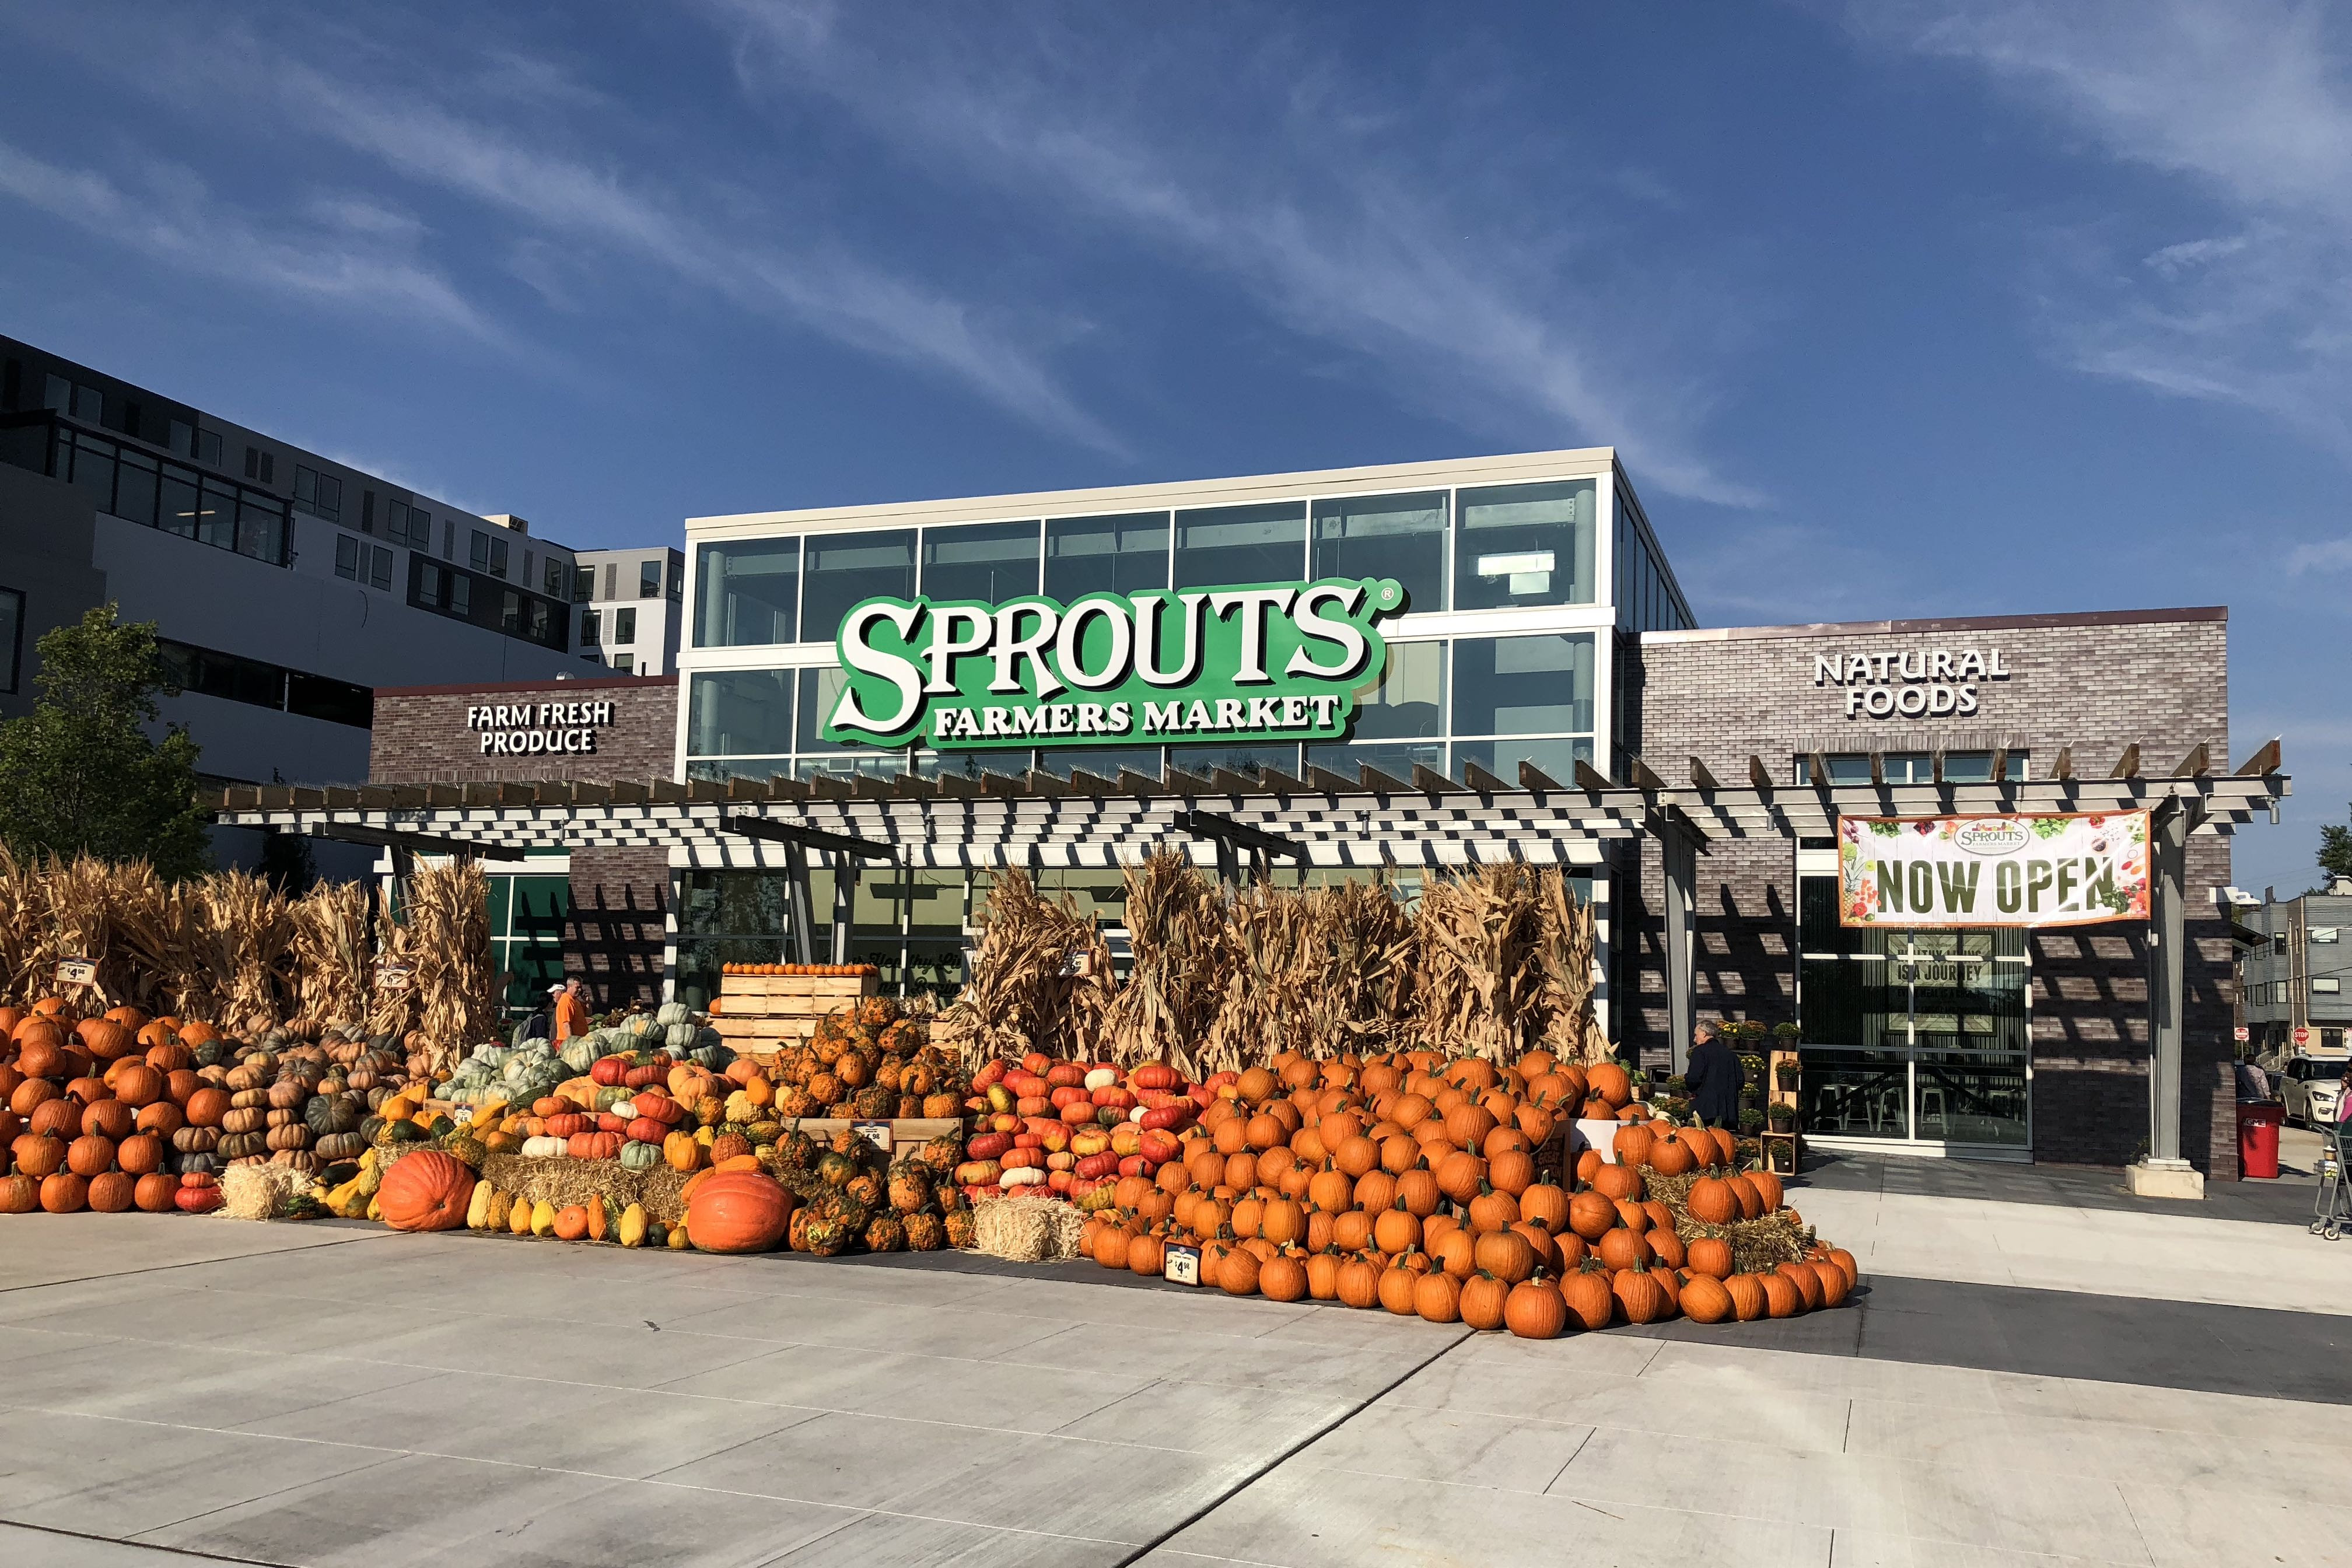 sprouts-farmers-market-broad-street